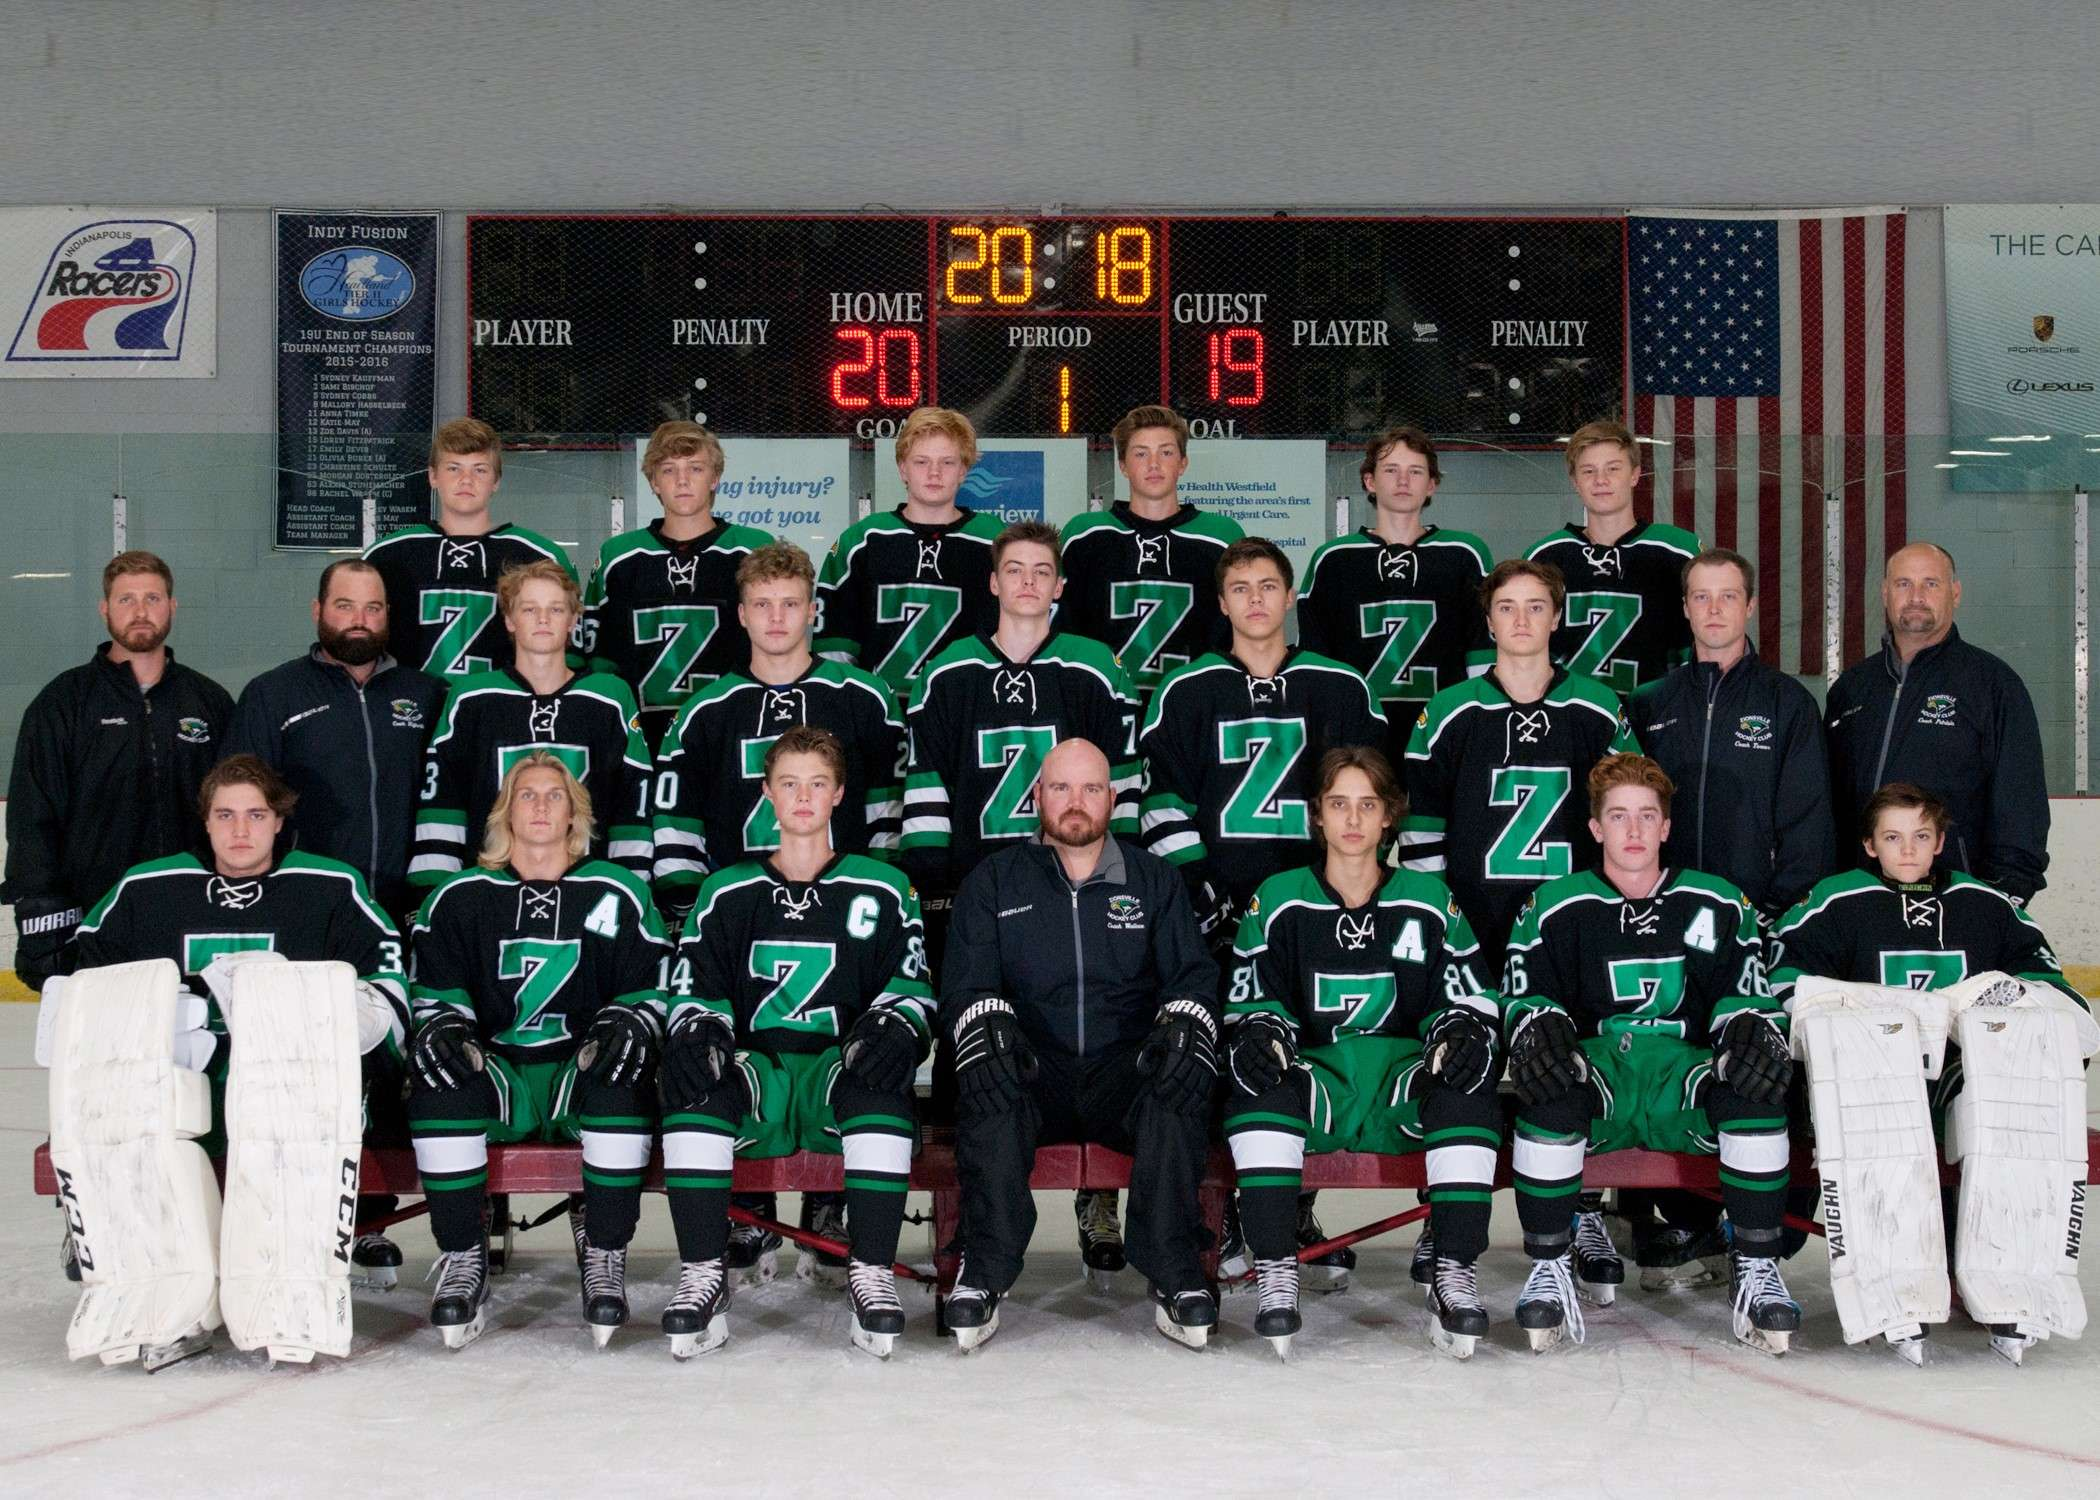 Zionsville Hockey Club